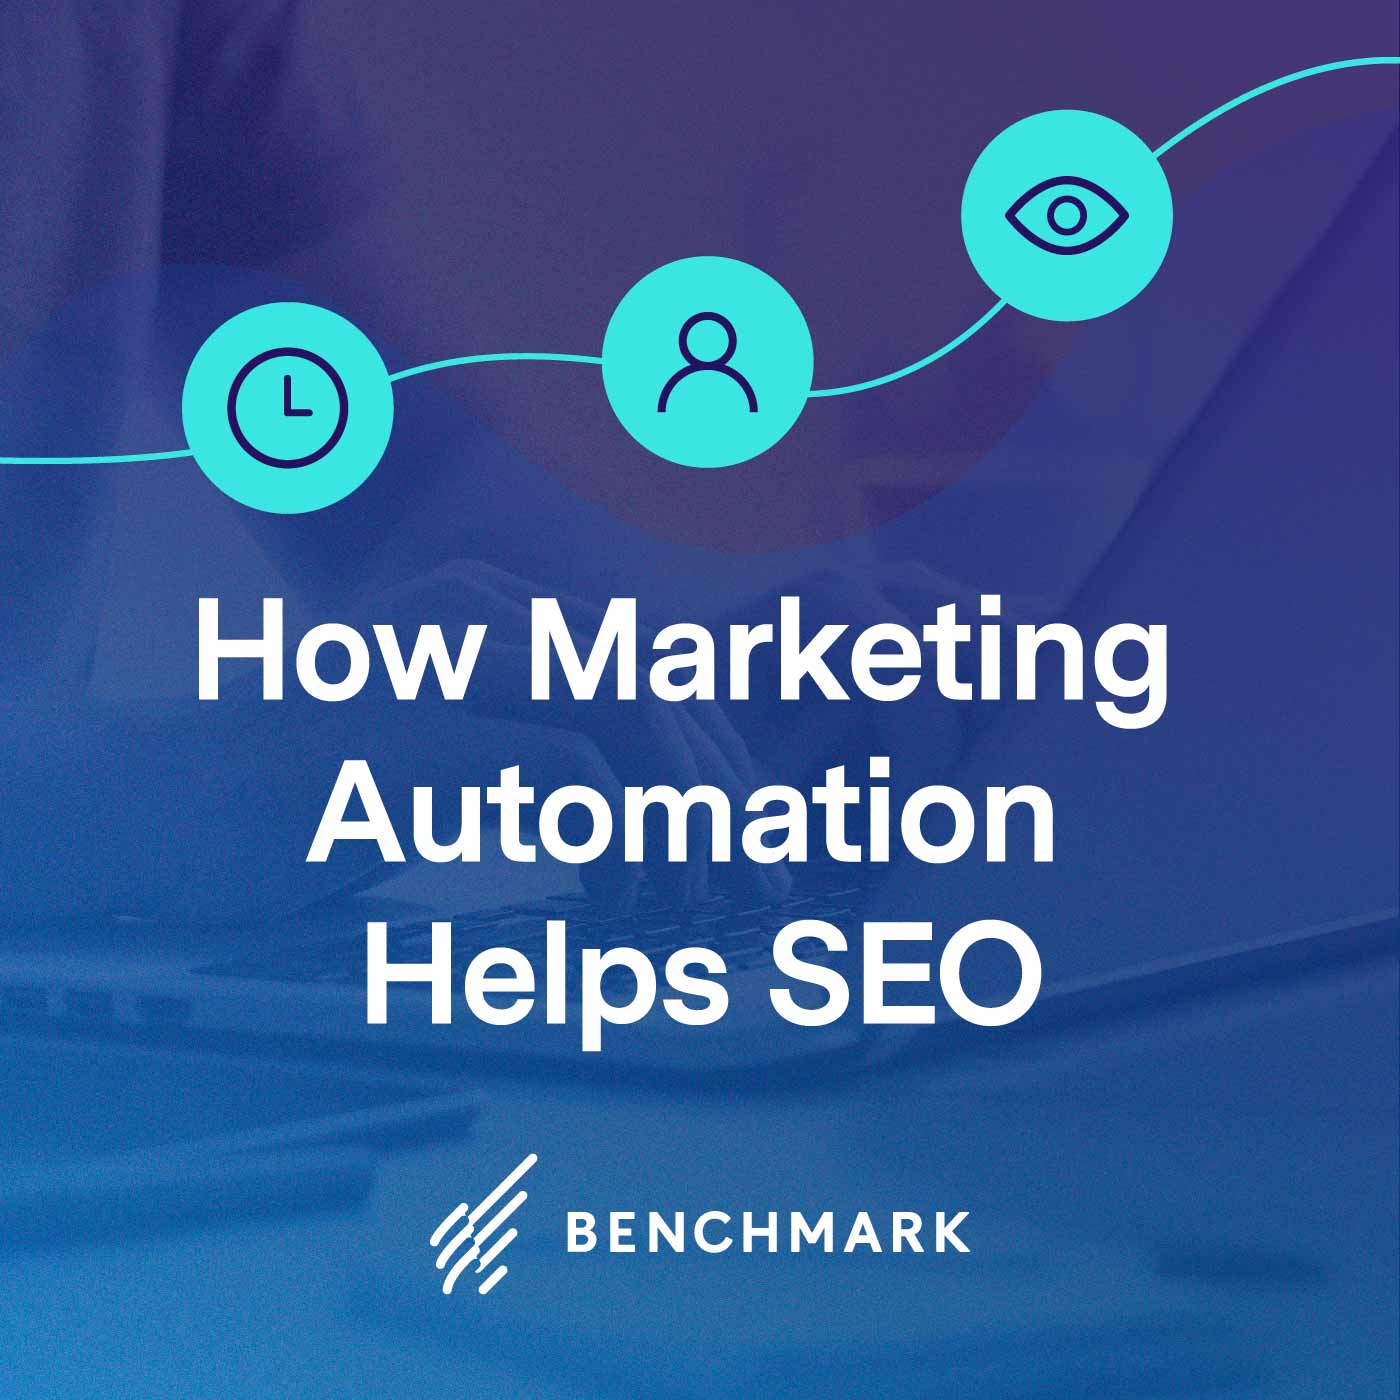 How Marketing Automation Helps SEO